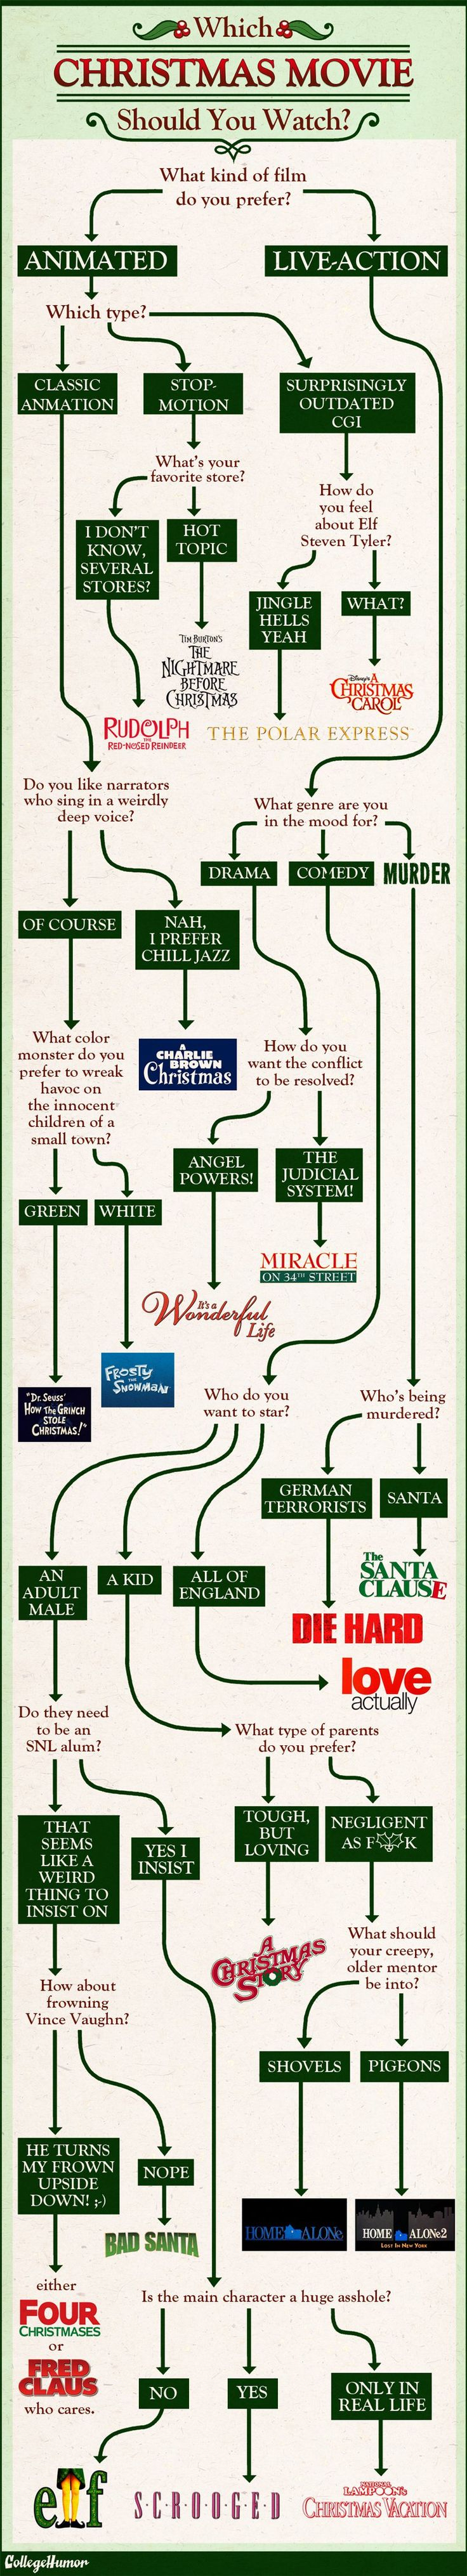 #Infographic #Flowchart: Which #Christmas Movie Should You Watch?  - It's a Wonderful Life.